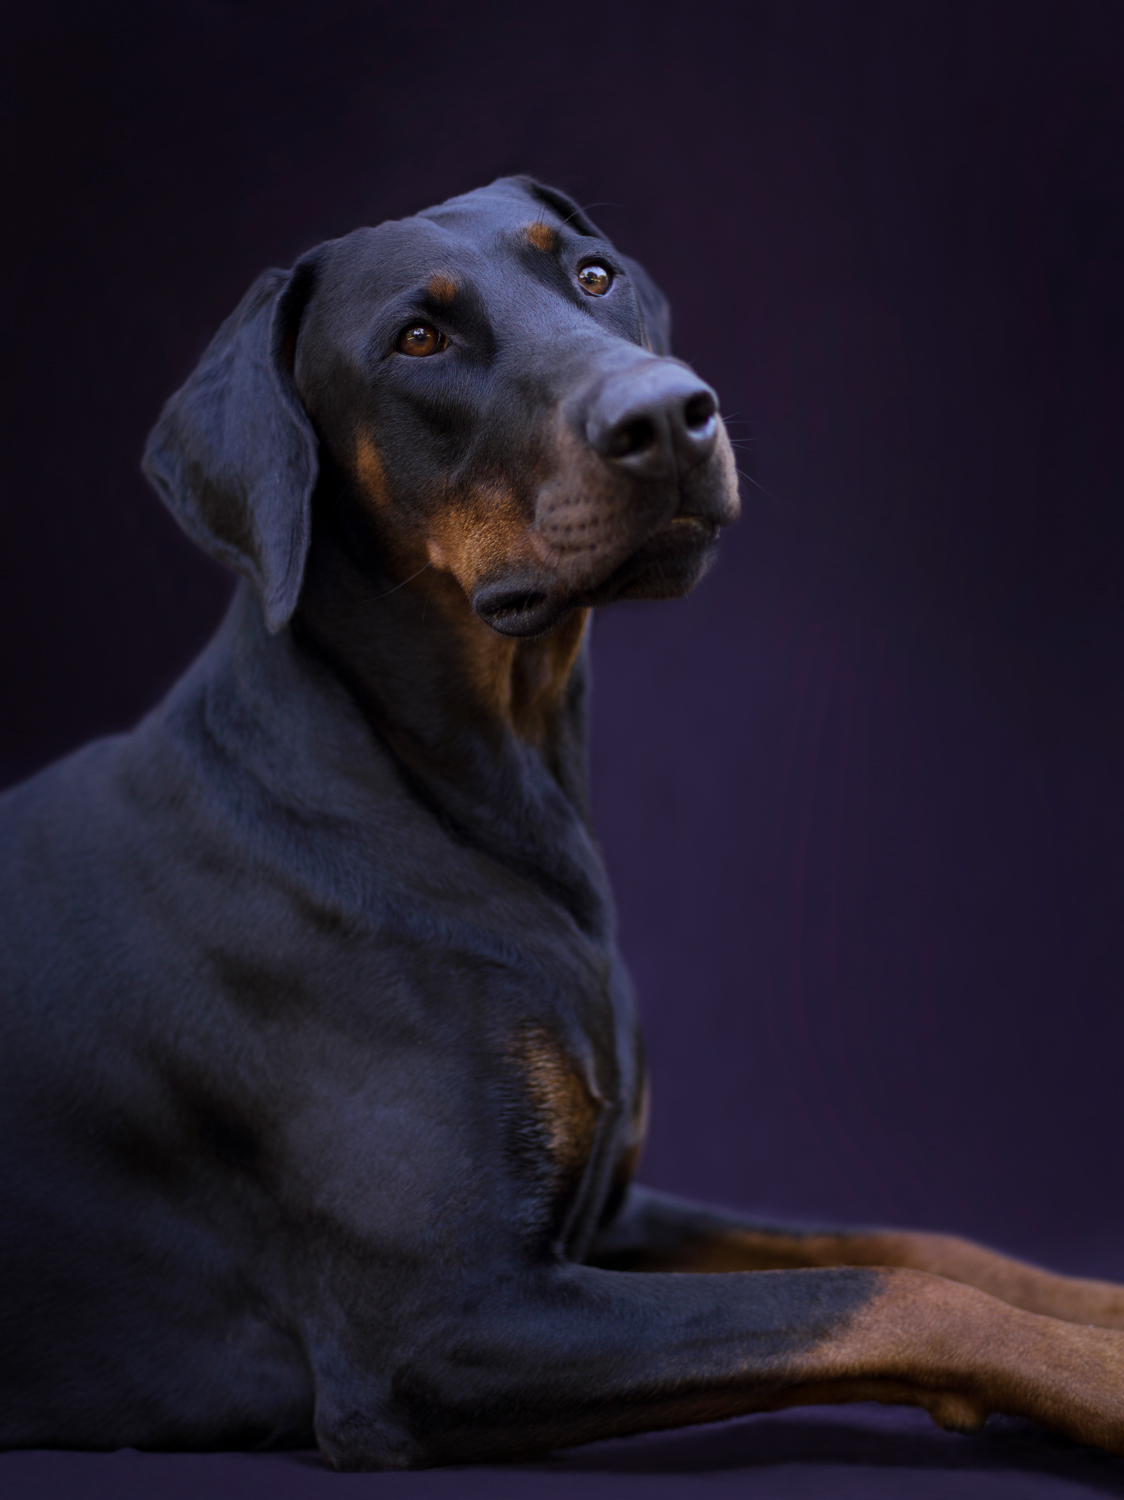 Doberman Dog photographed against Black Background, lying down facing to the right, head turned slightly towards camera